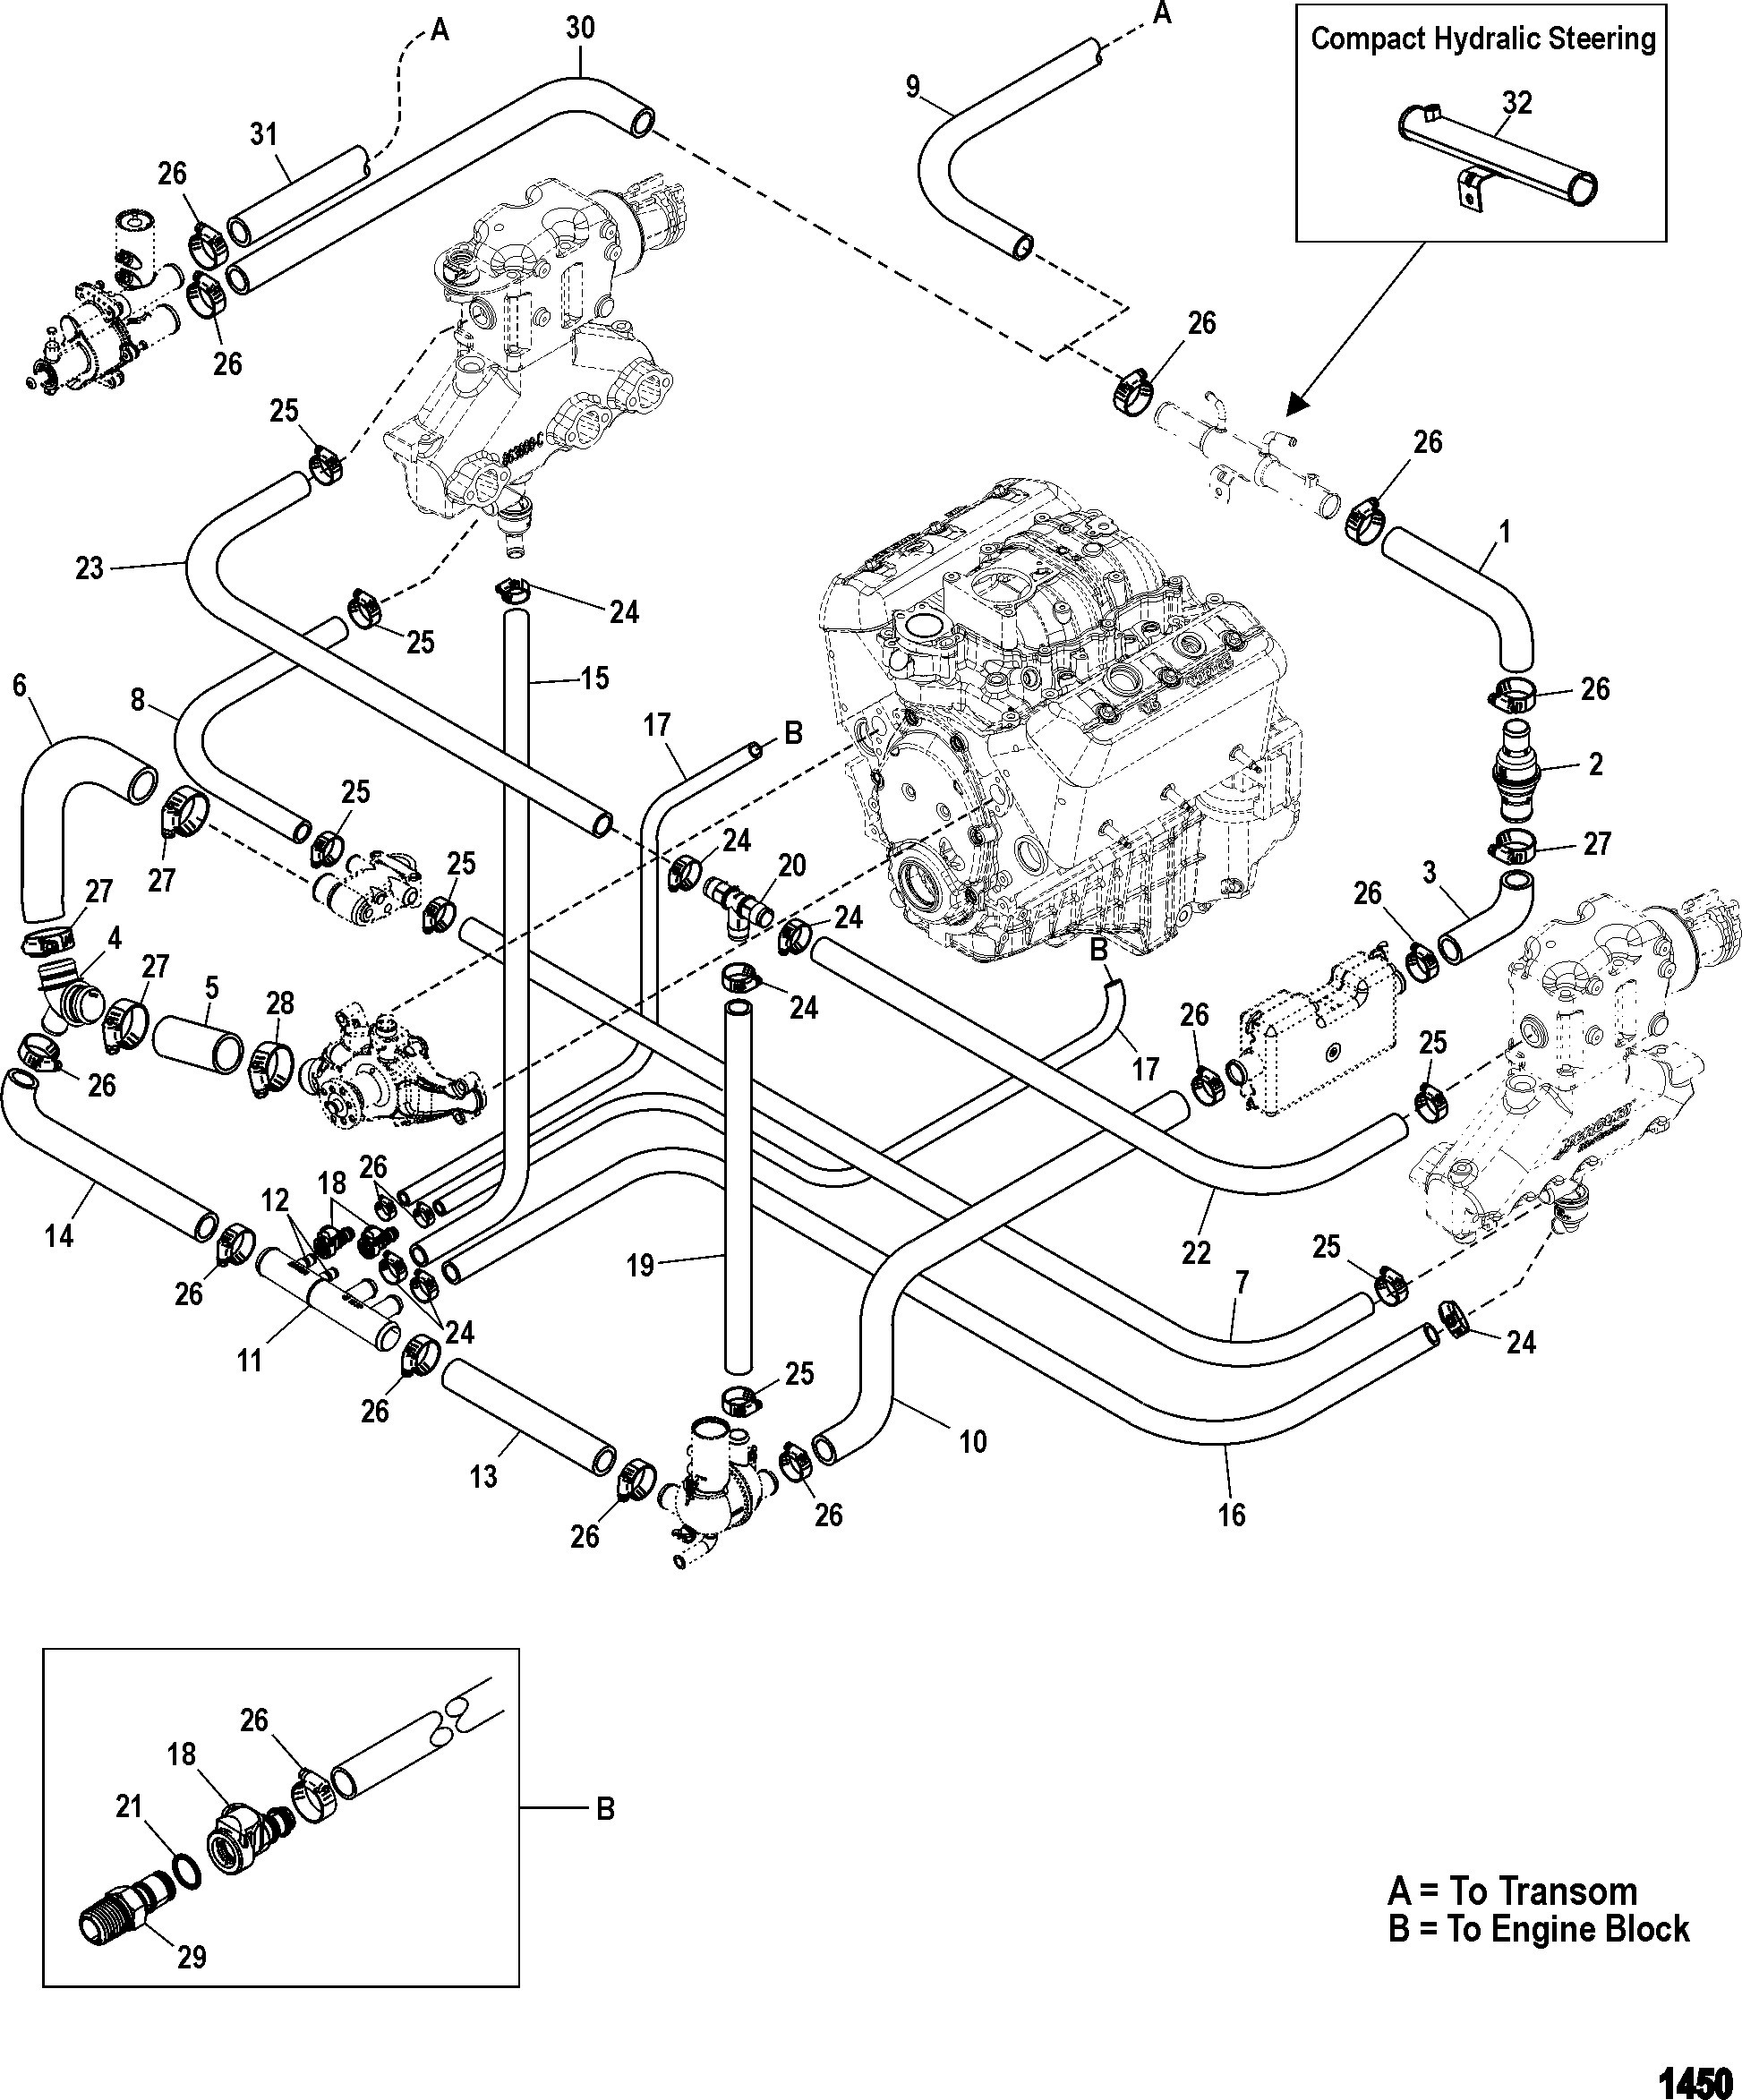 715949 1992 Camaro Rs 305 A besides 1987 Nissan Truck Wiring Diagram as well 646013 Bad Alternator furthermore PP6i 16788 additionally 300zx Engine Diagram. on 1990 300zx engine wiring diagram schematic